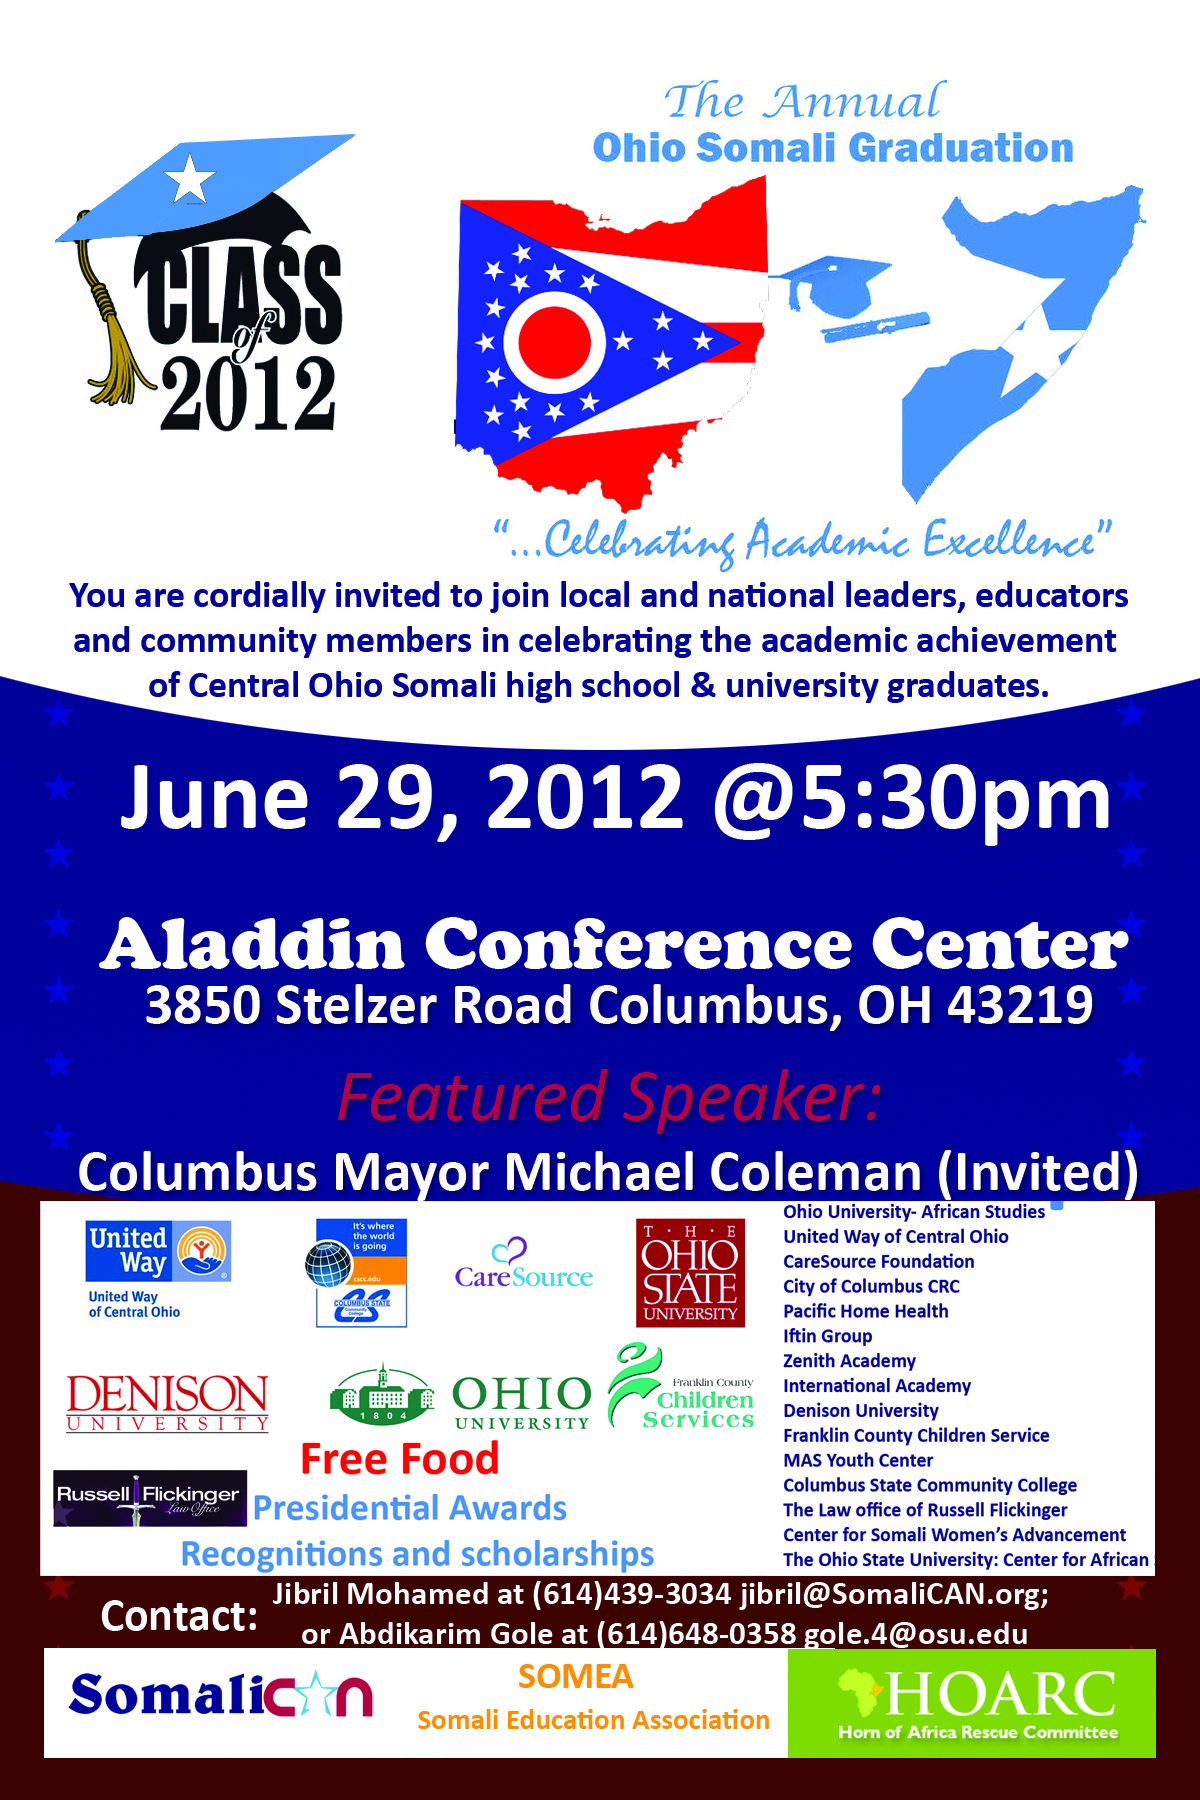 The third annual ohio somali graduation, teachers' workshop